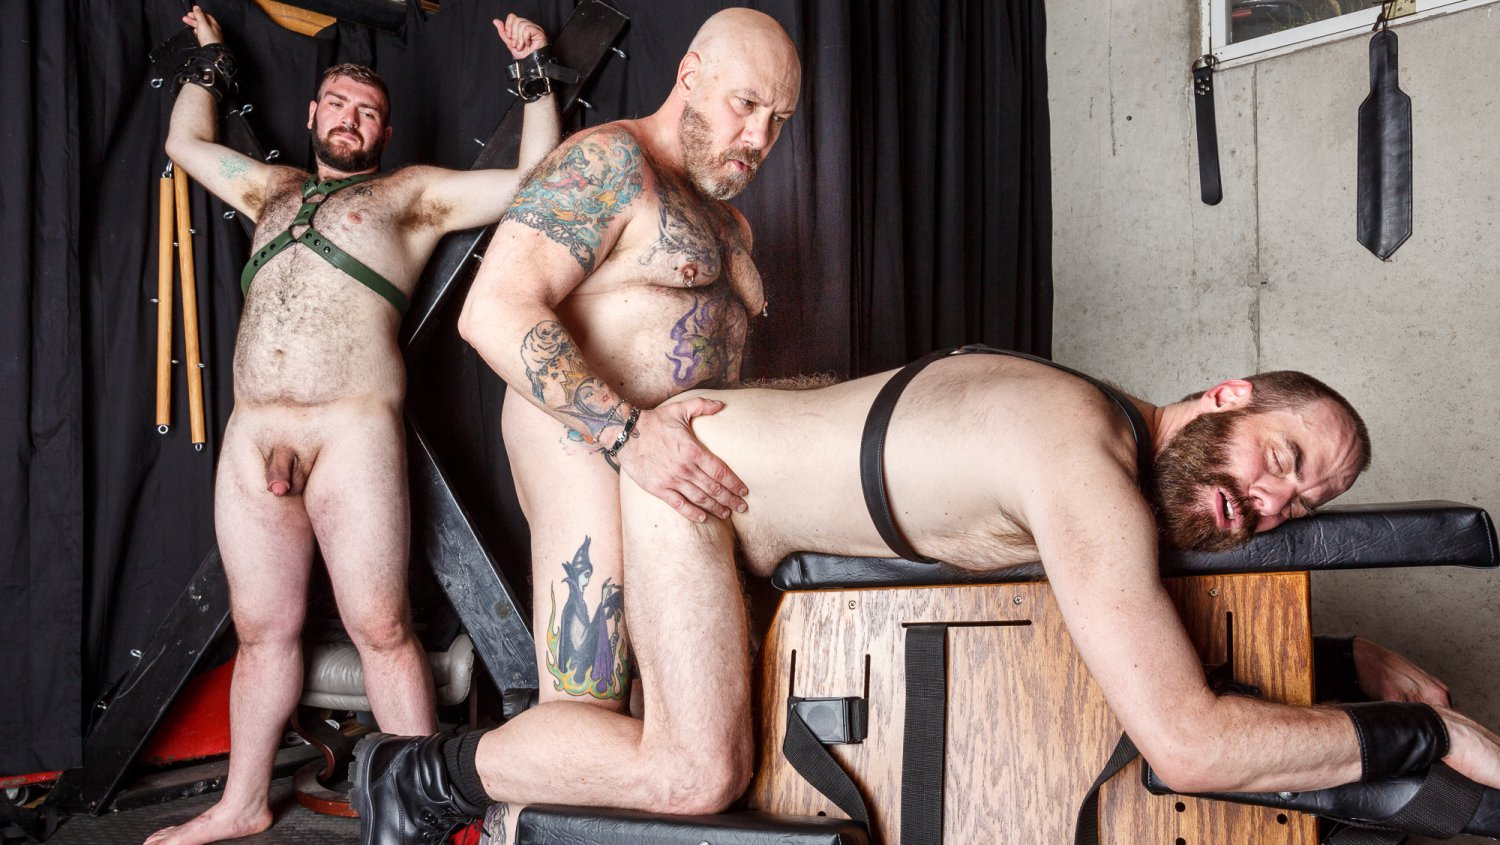 Daddy Cub, Daddy Lucas, and Steve Sommers - BearFilms Nice manga xxx